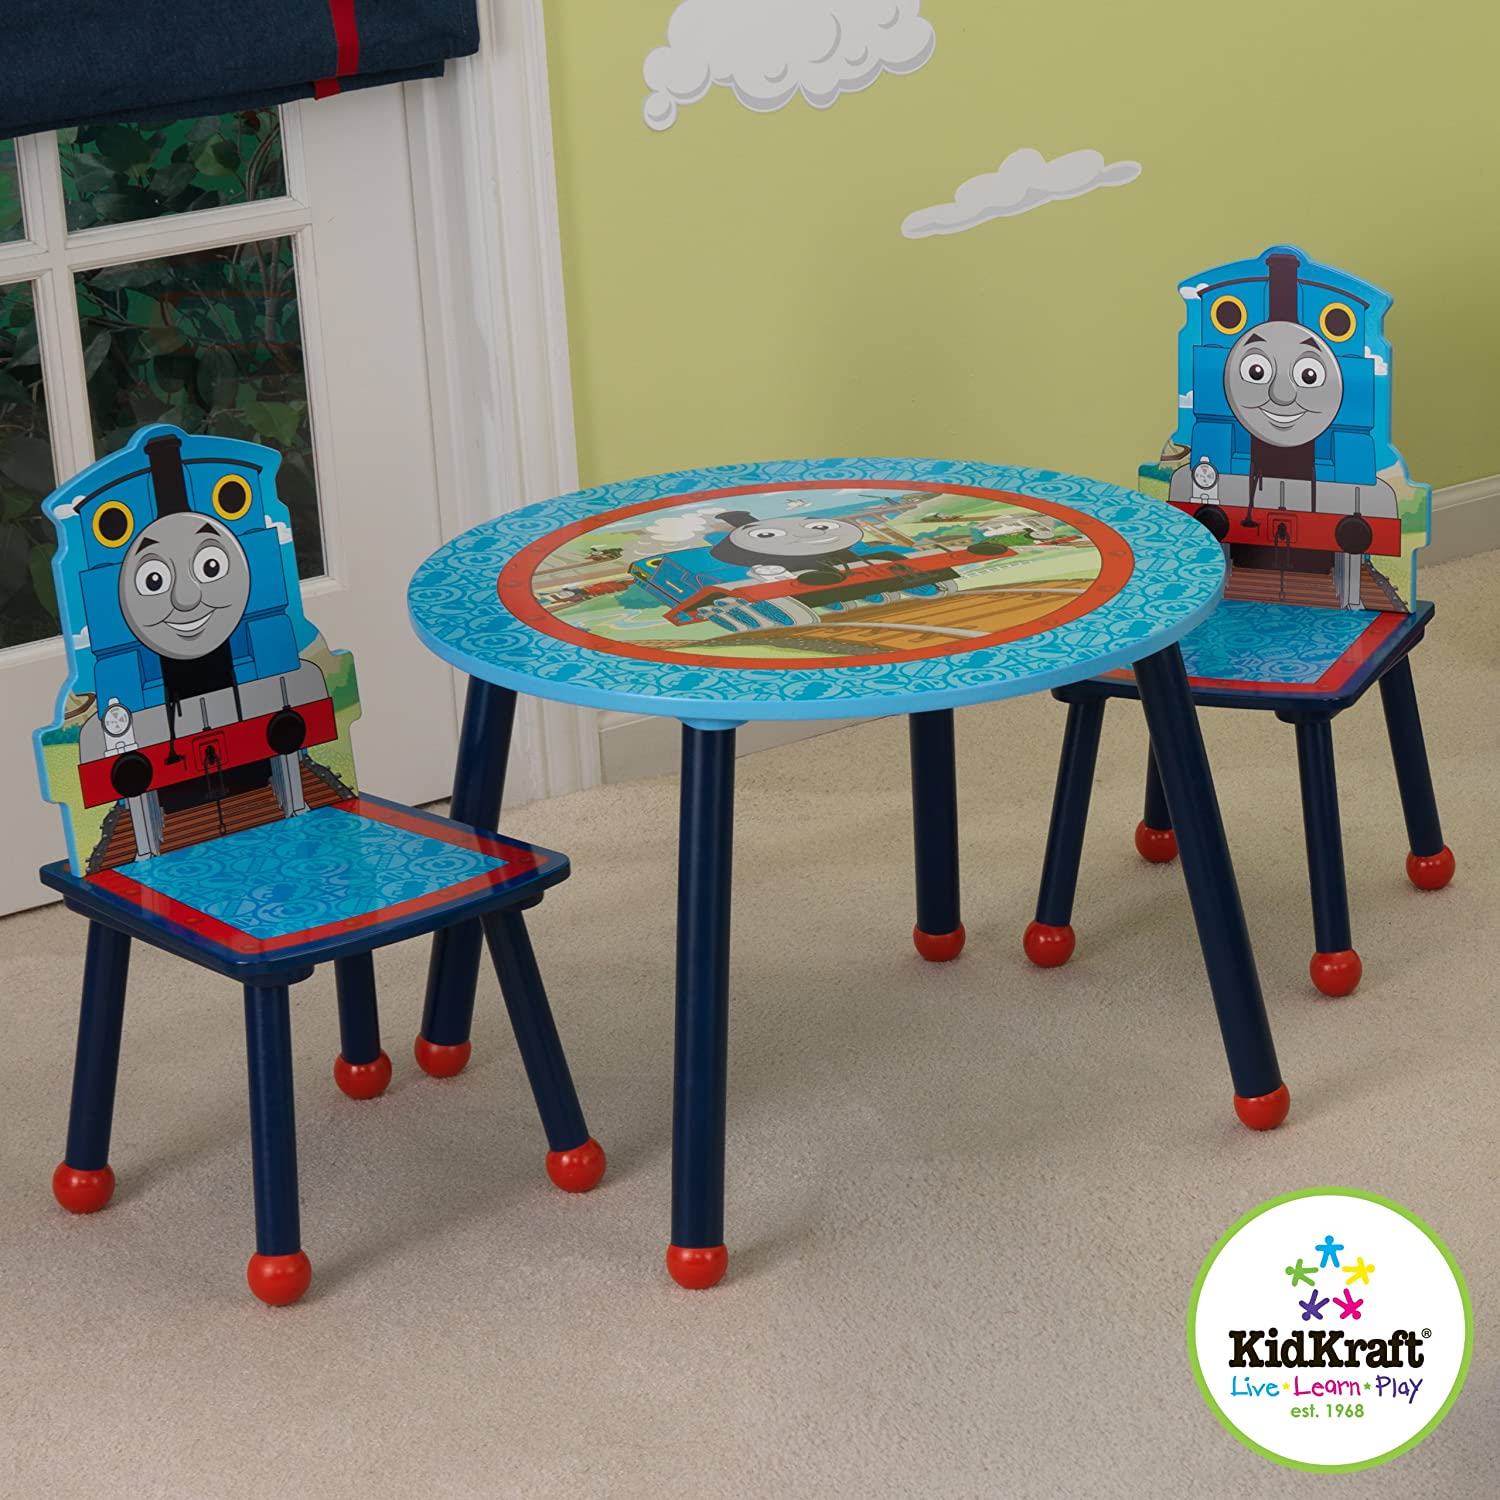 Amazon.com KidKraft Thomas And Friends Table And Chair Set Toys \\u0026 Games : train set table for kids - pezcame.com